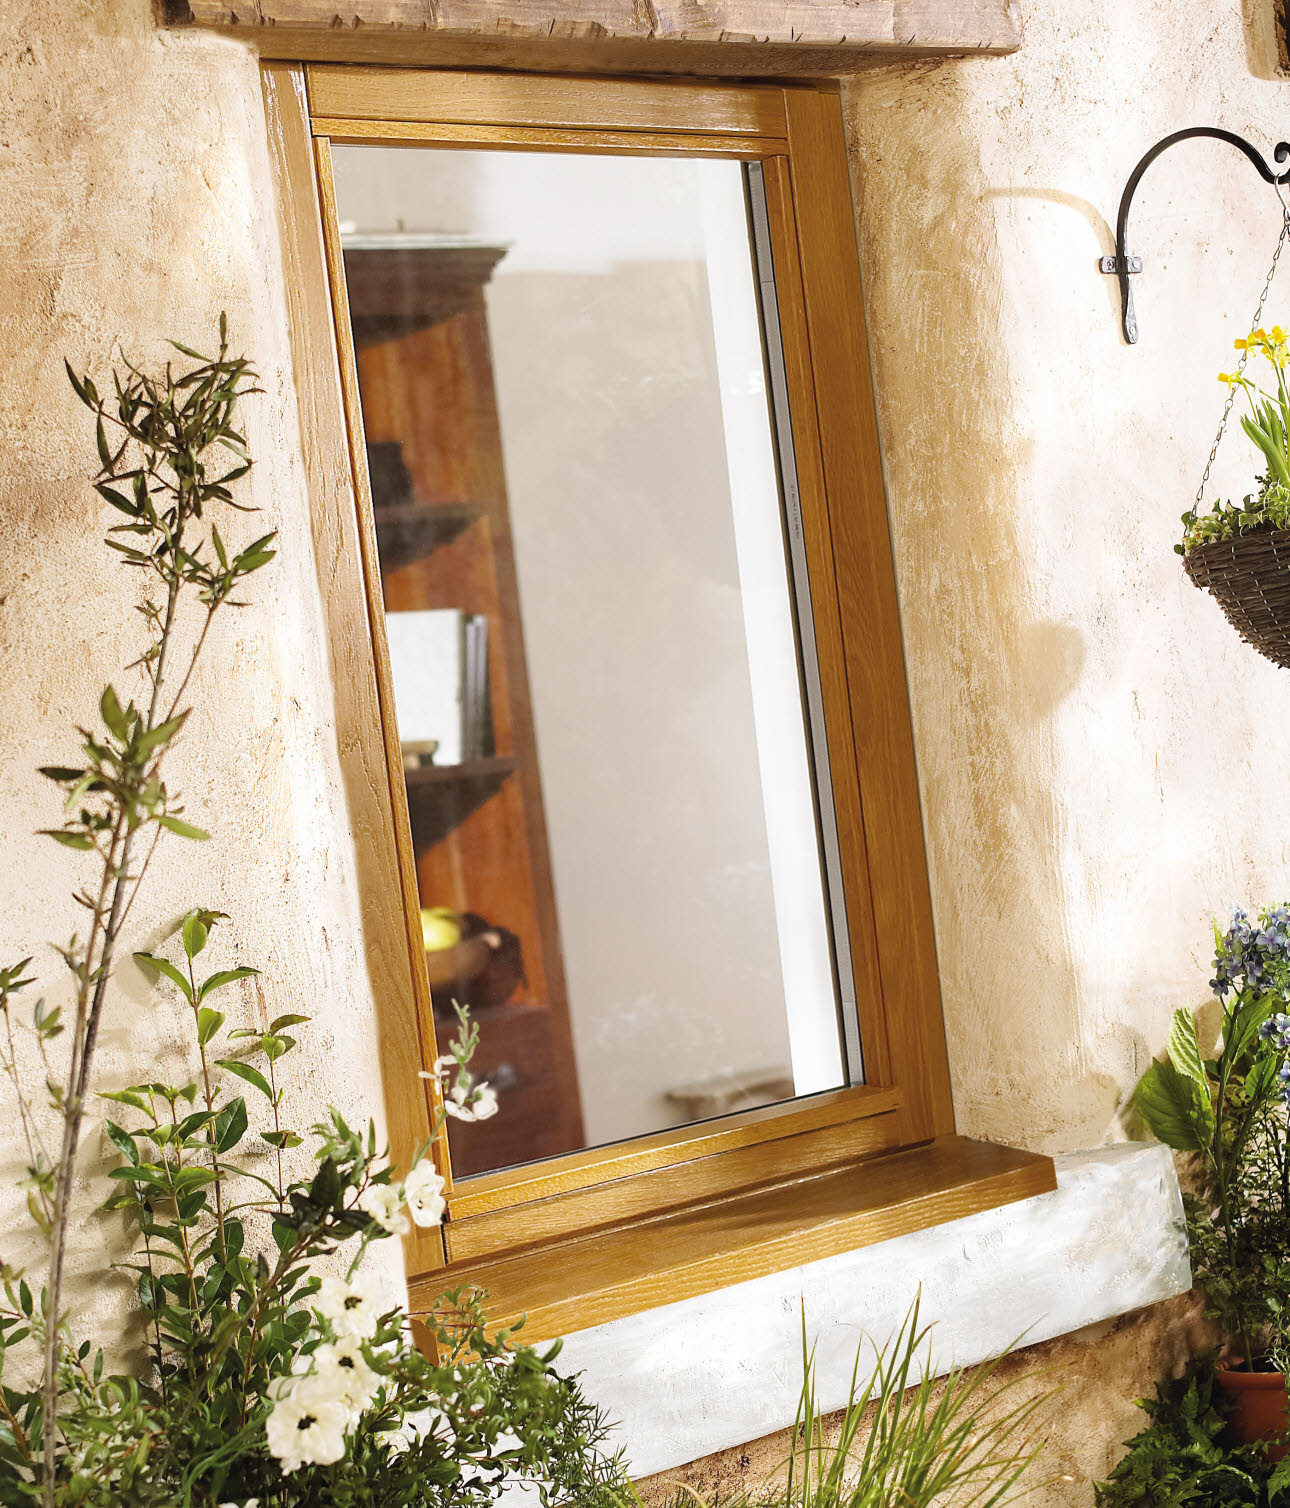 JELD-WEN Oak Casement Stormsure Timber Window